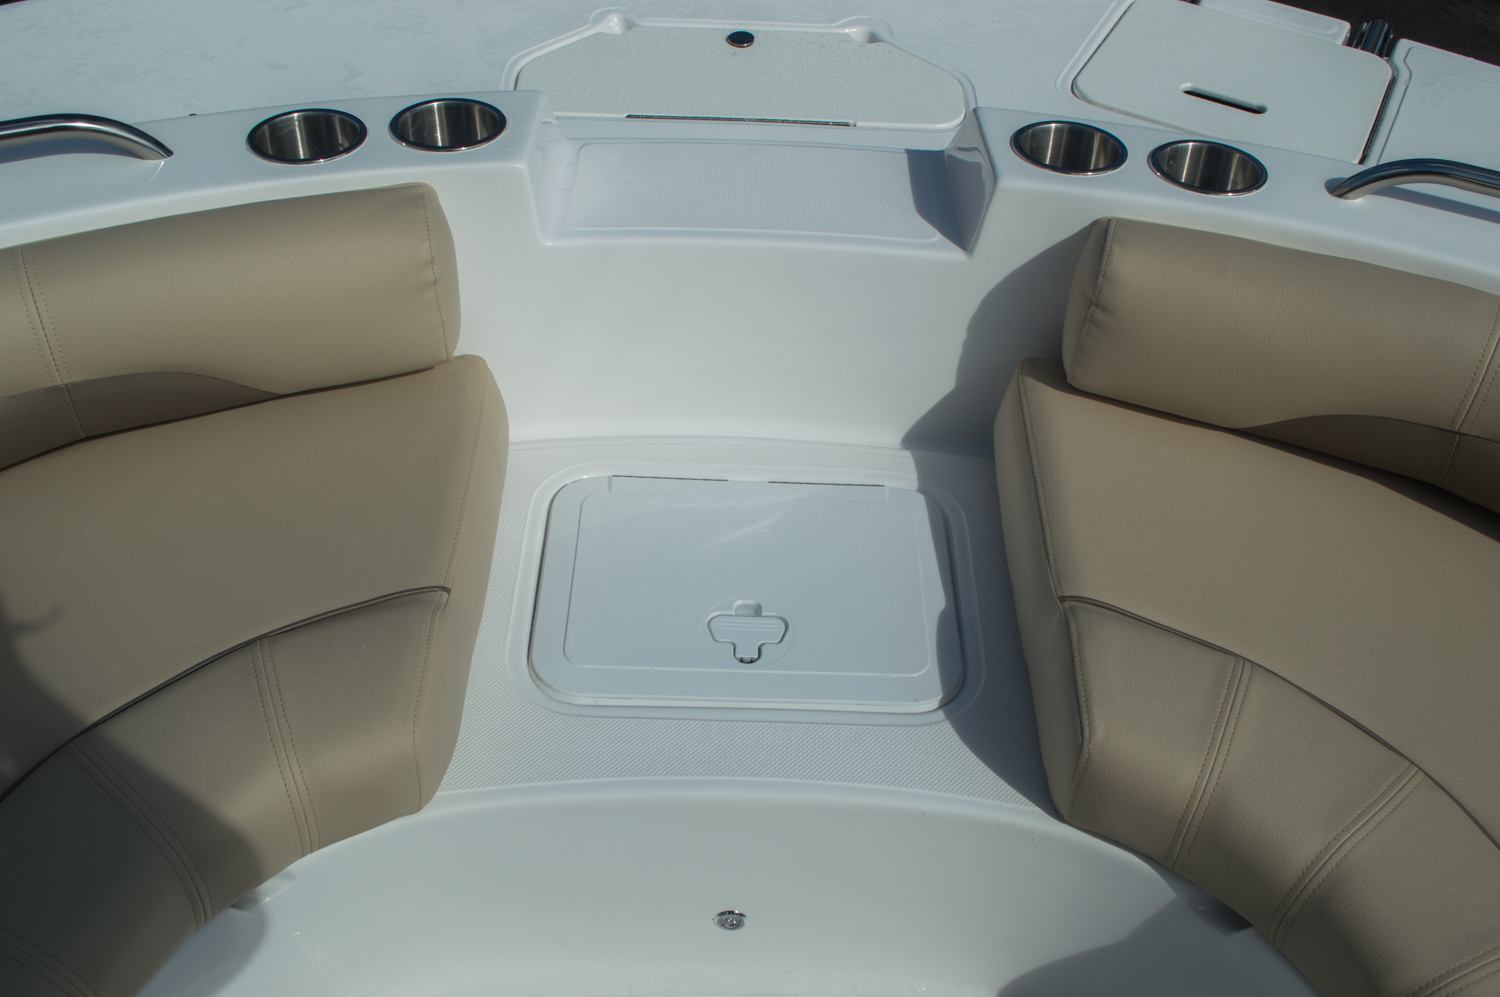 Thumbnail 16 for New 2016 Hurricane SunDeck SD 187 OB boat for sale in West Palm Beach, FL